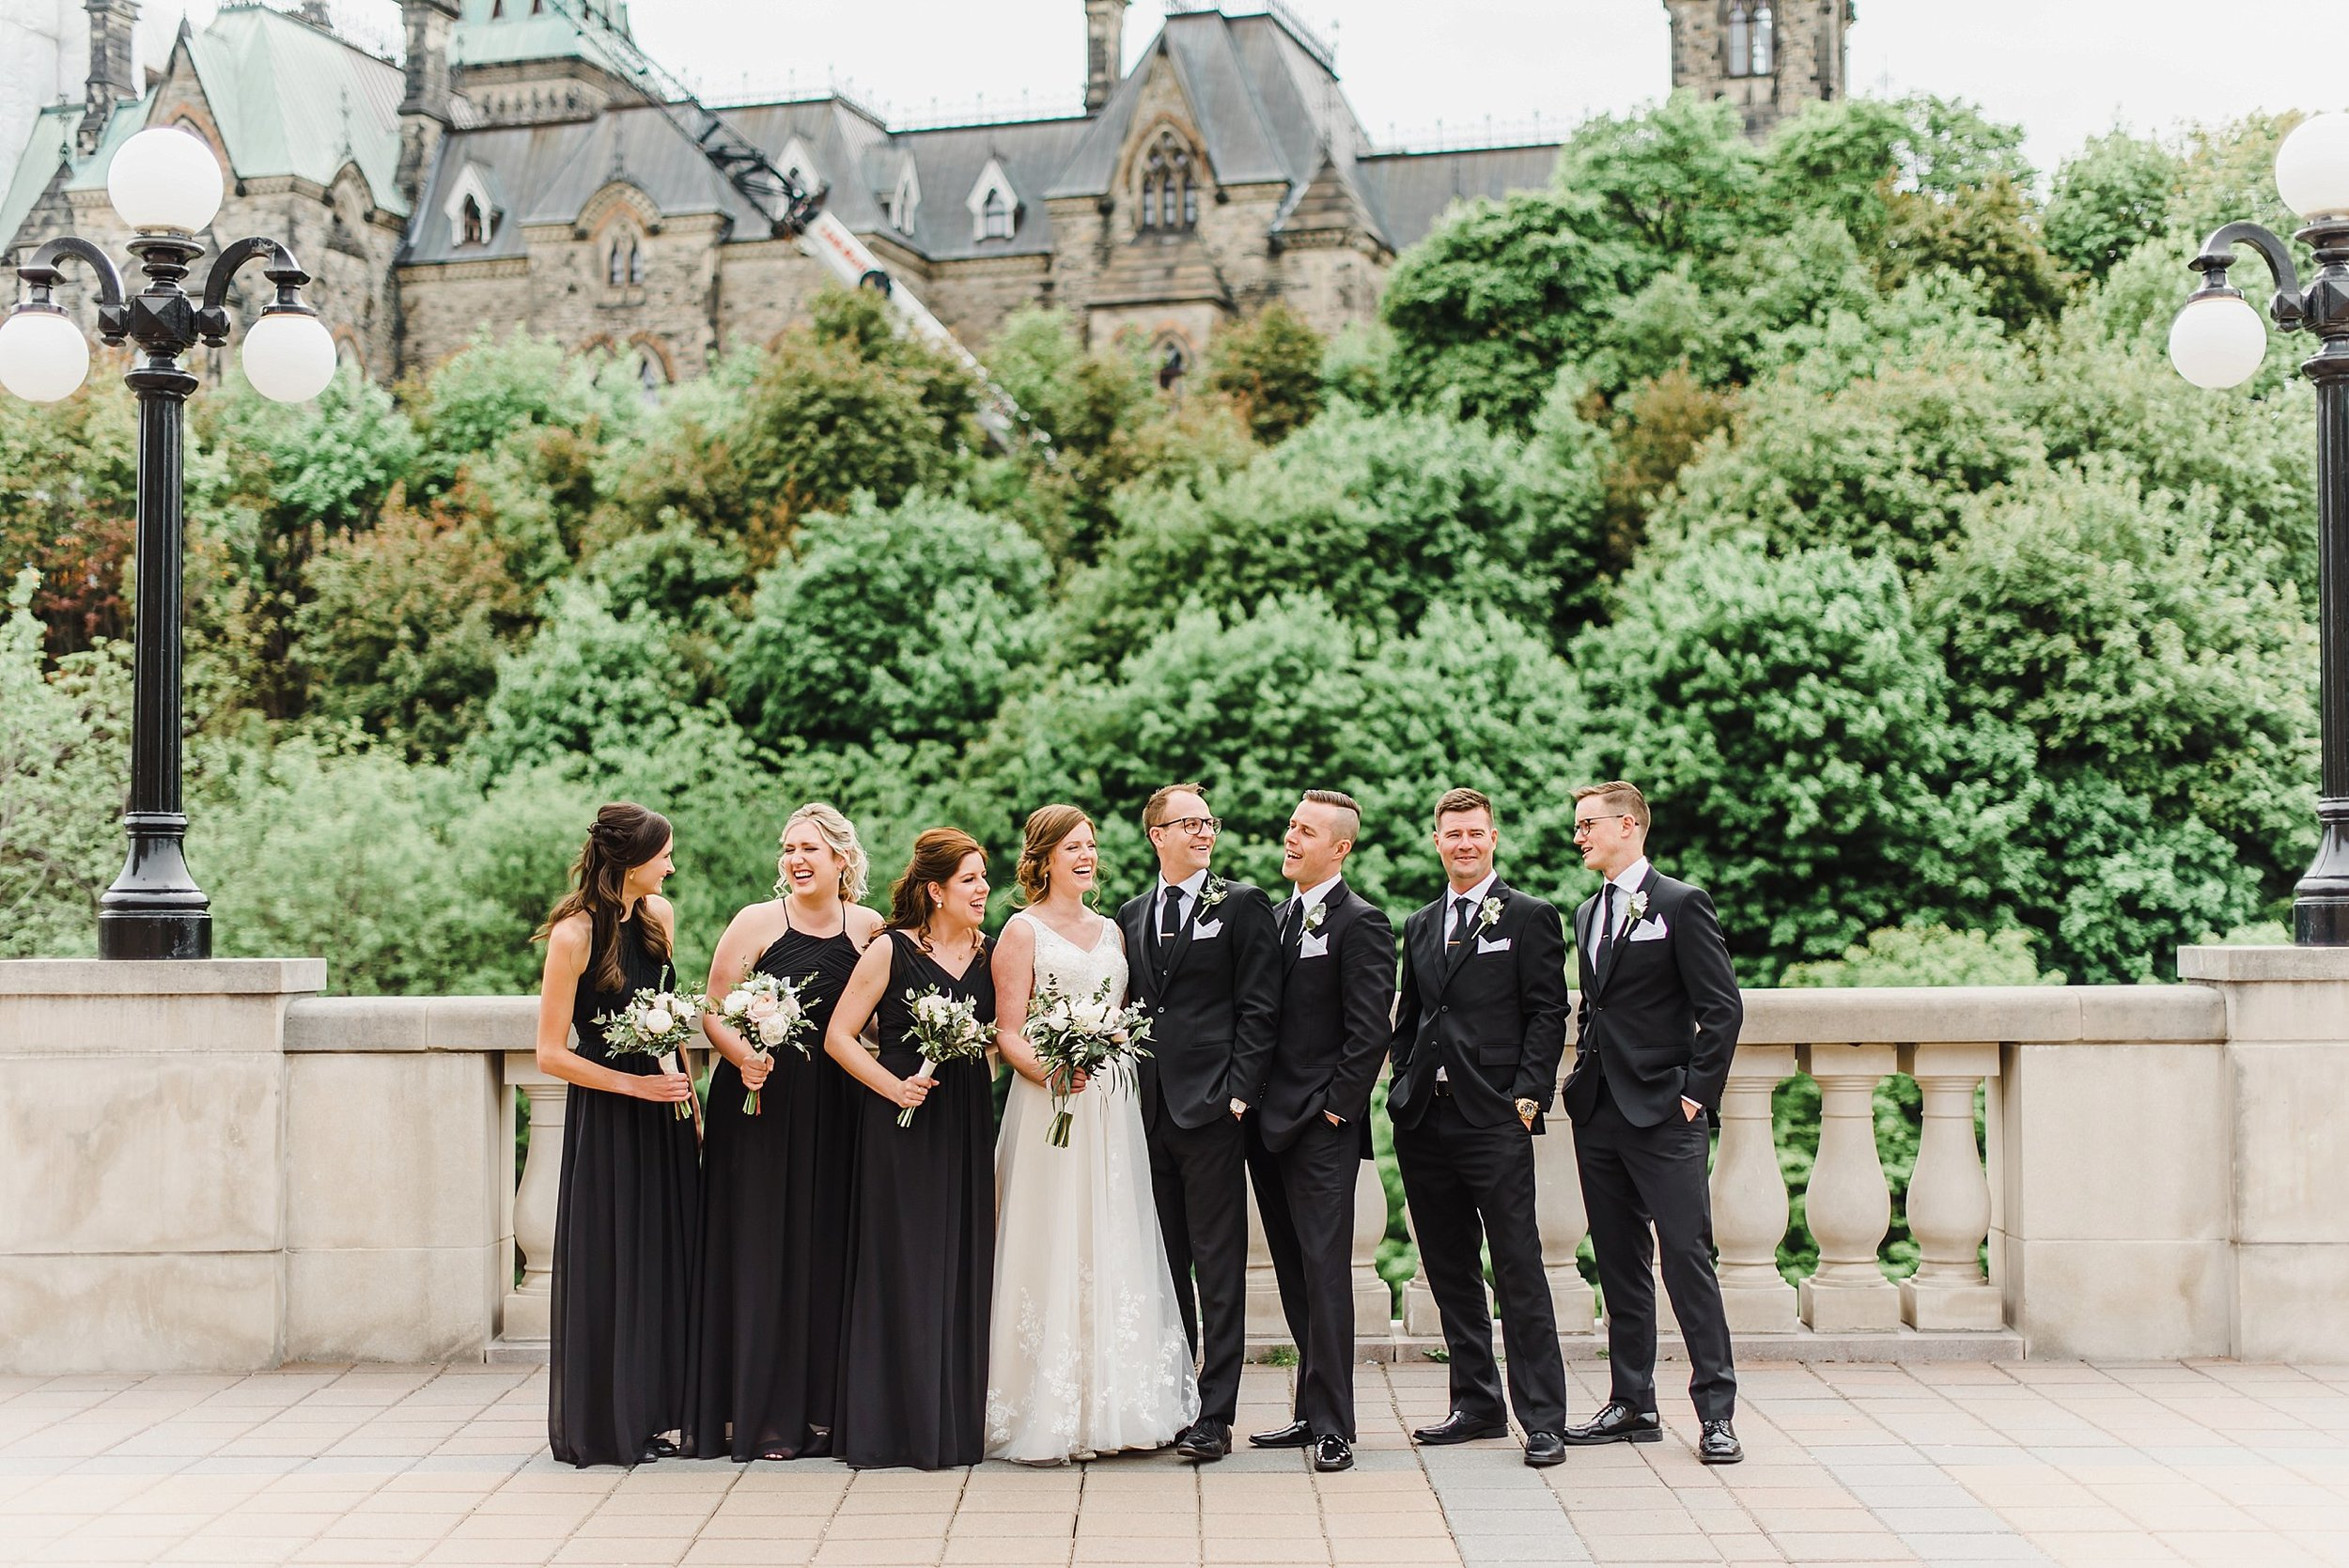 The bridal party joined us later on at the balcony of Chateau Laurier!